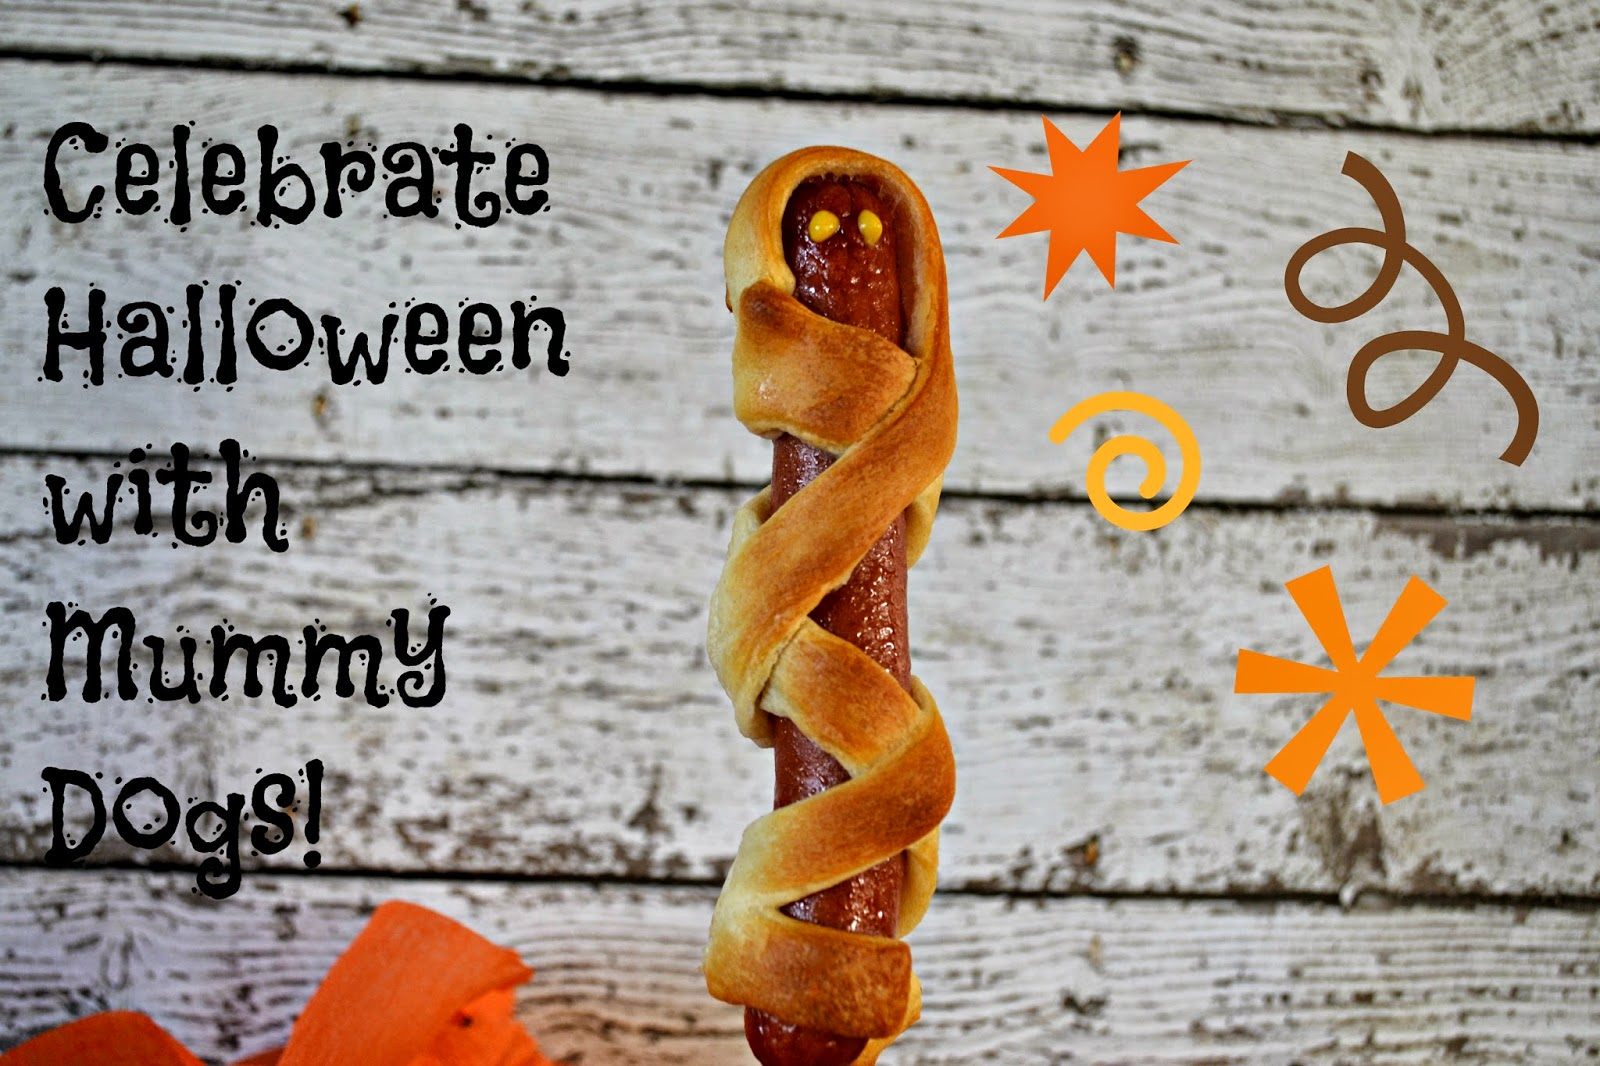 Mummy Dogs for Halloween Fun!  #recipe Halloween Dinner Ideas Creative Hot Dog meals Hot Dogs on Halloween Mummy Hot Dogs Recipe